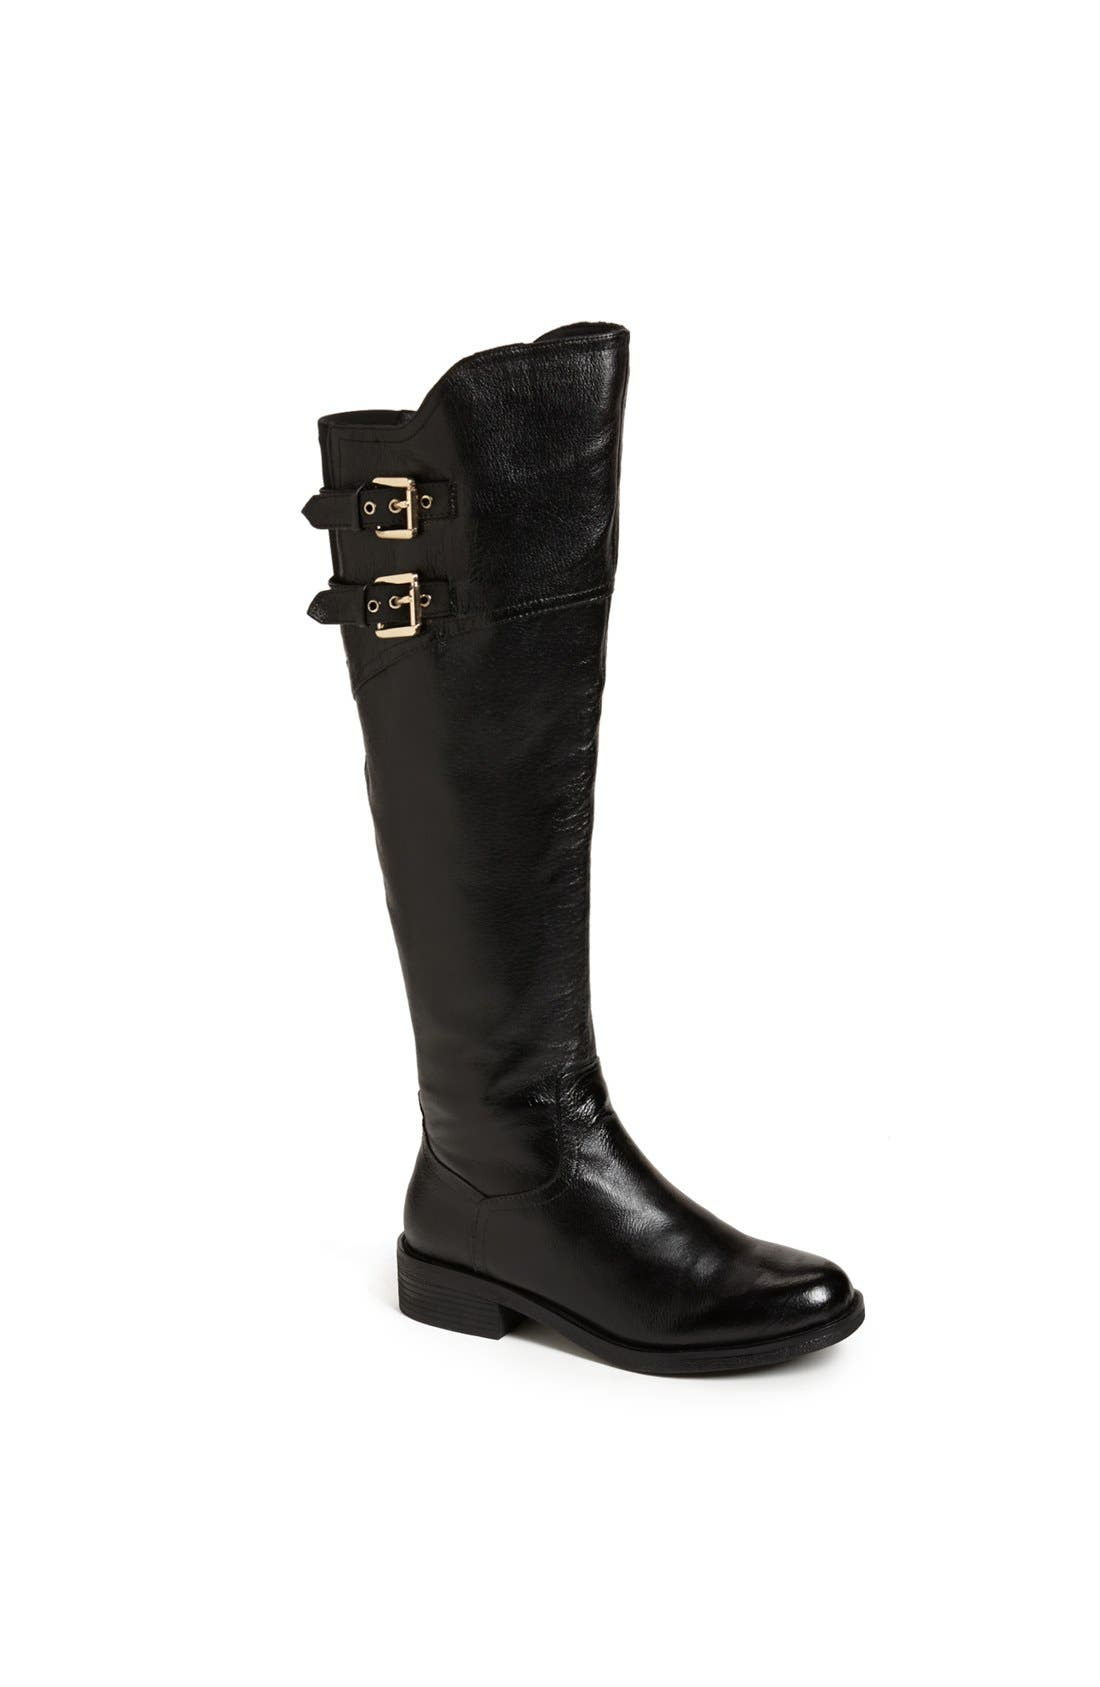 Alternate Image 1 Selected - Steve Madden 'Obvious' Over the Knee Boot